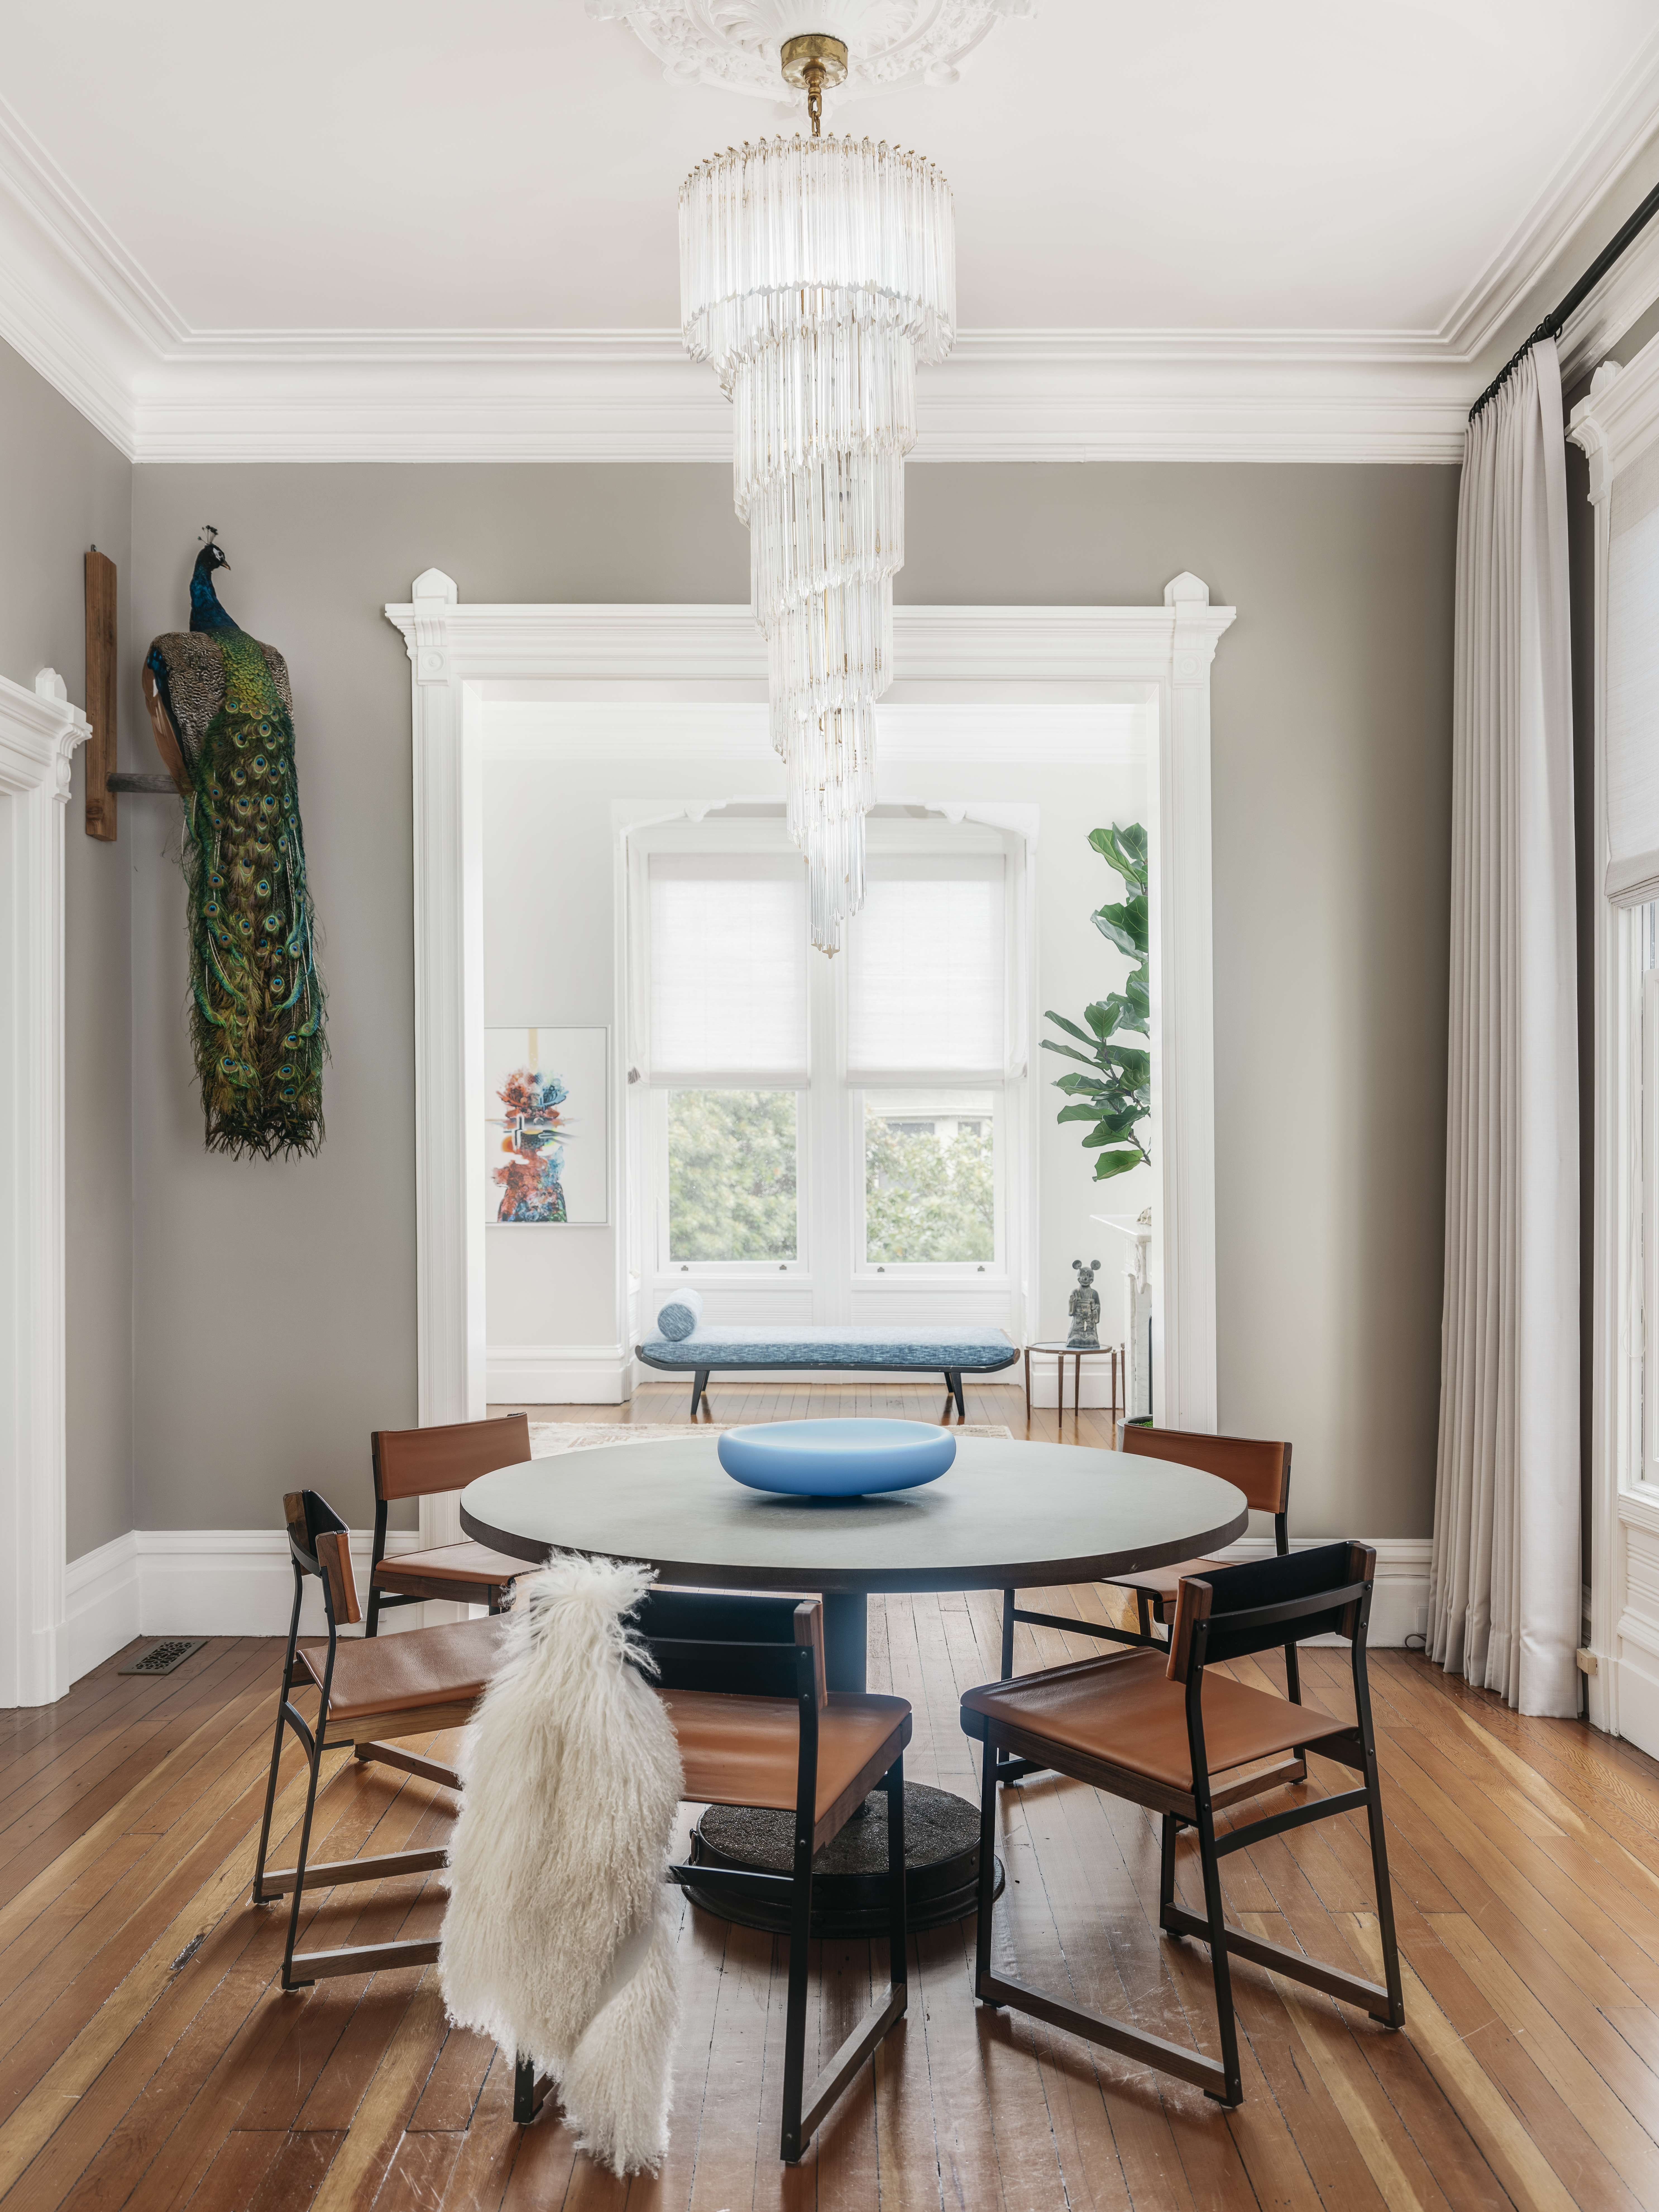 Upper Haight Edwardian Remodel of a Dining Room with a vintage Venini Chandelier.